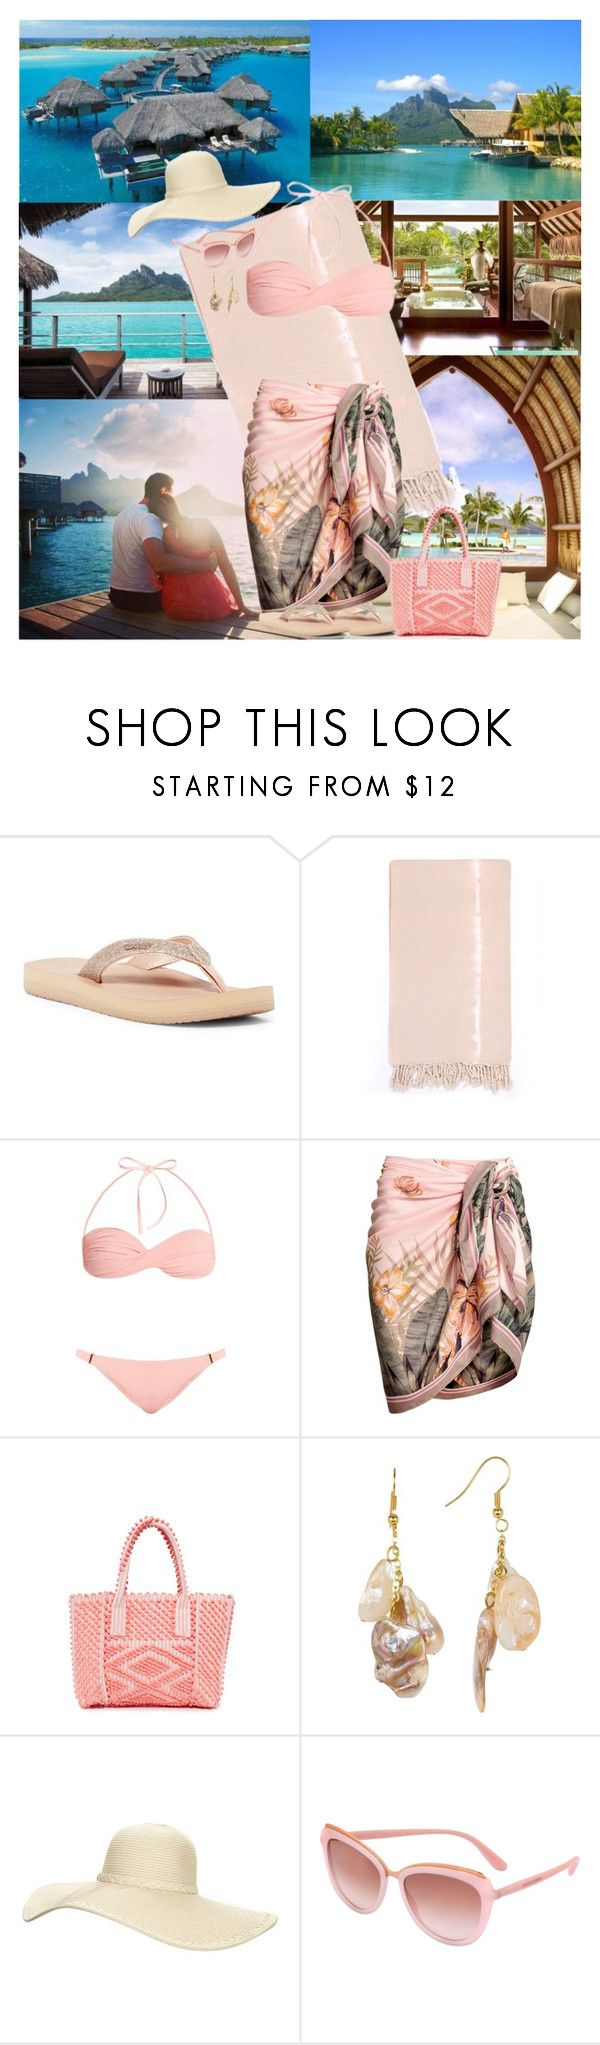 """""""Four Seasons Resort Bora Bora, French Polynesia"""" by horcal ❤ liked on Polyvore featuring Bora Bora, Reef, Turkish-T, Melissa Odabash, Antonello, Kenneth Jay Lane, Reger by Janet Reger and Dolce&Gabbana"""